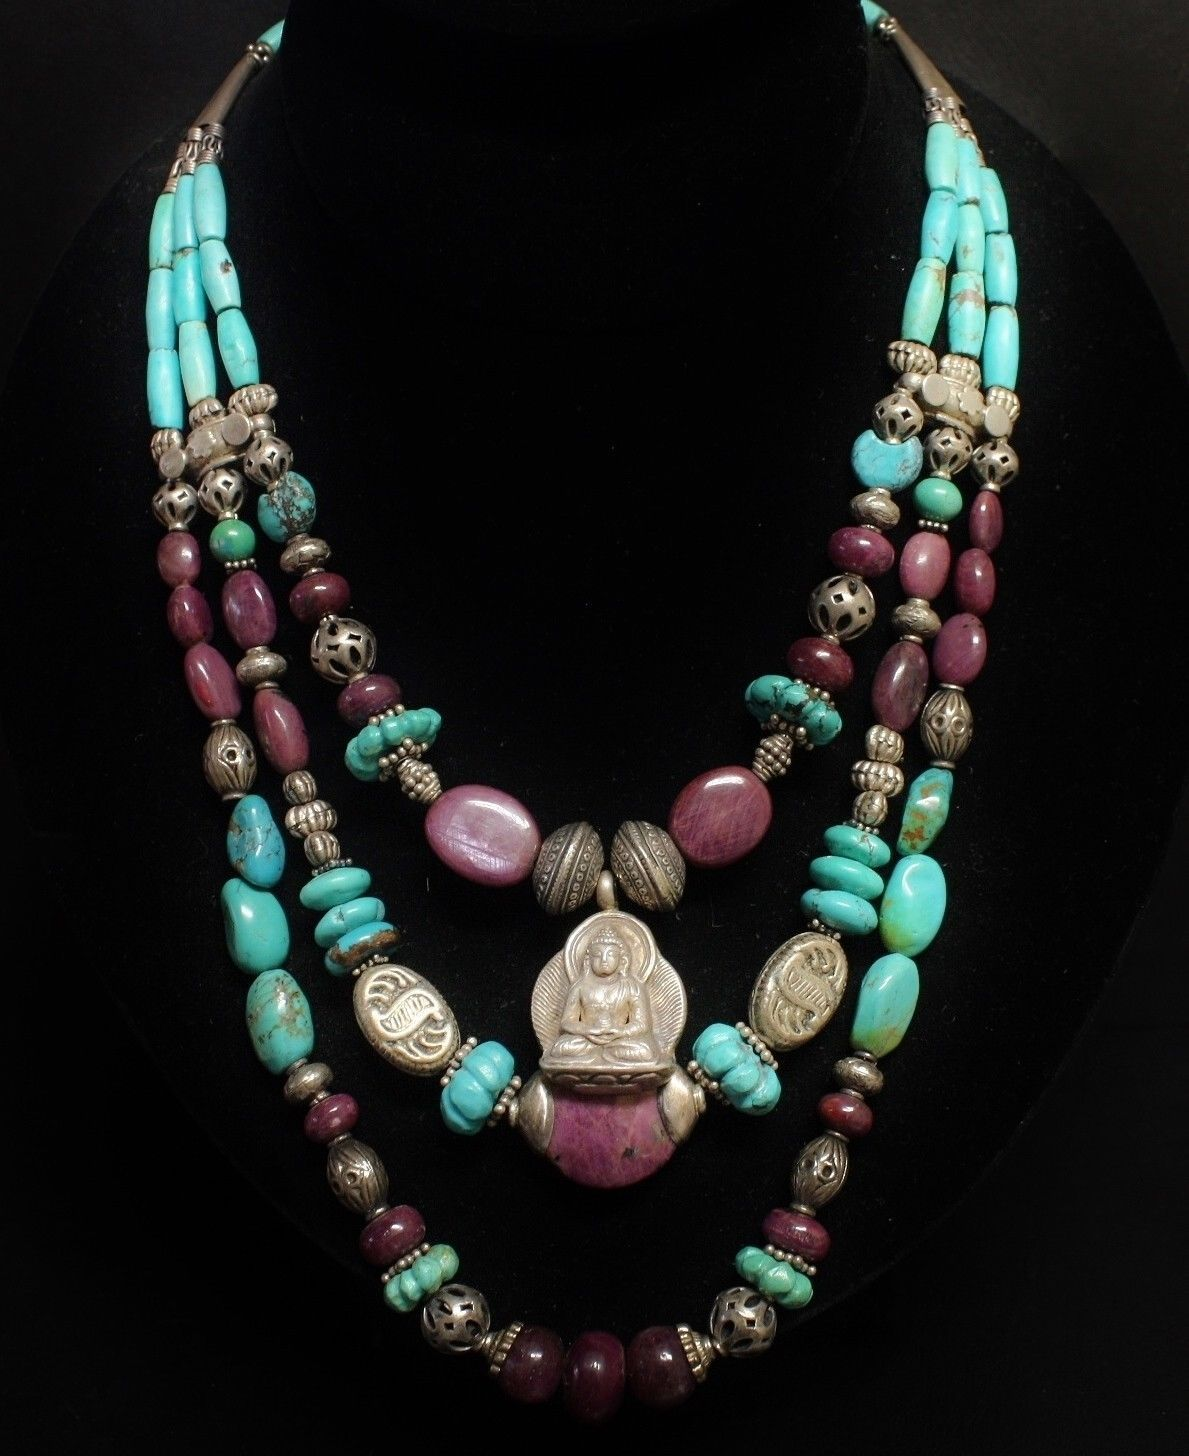 Turquoise, amethyst and silver Buddha amulet necklace